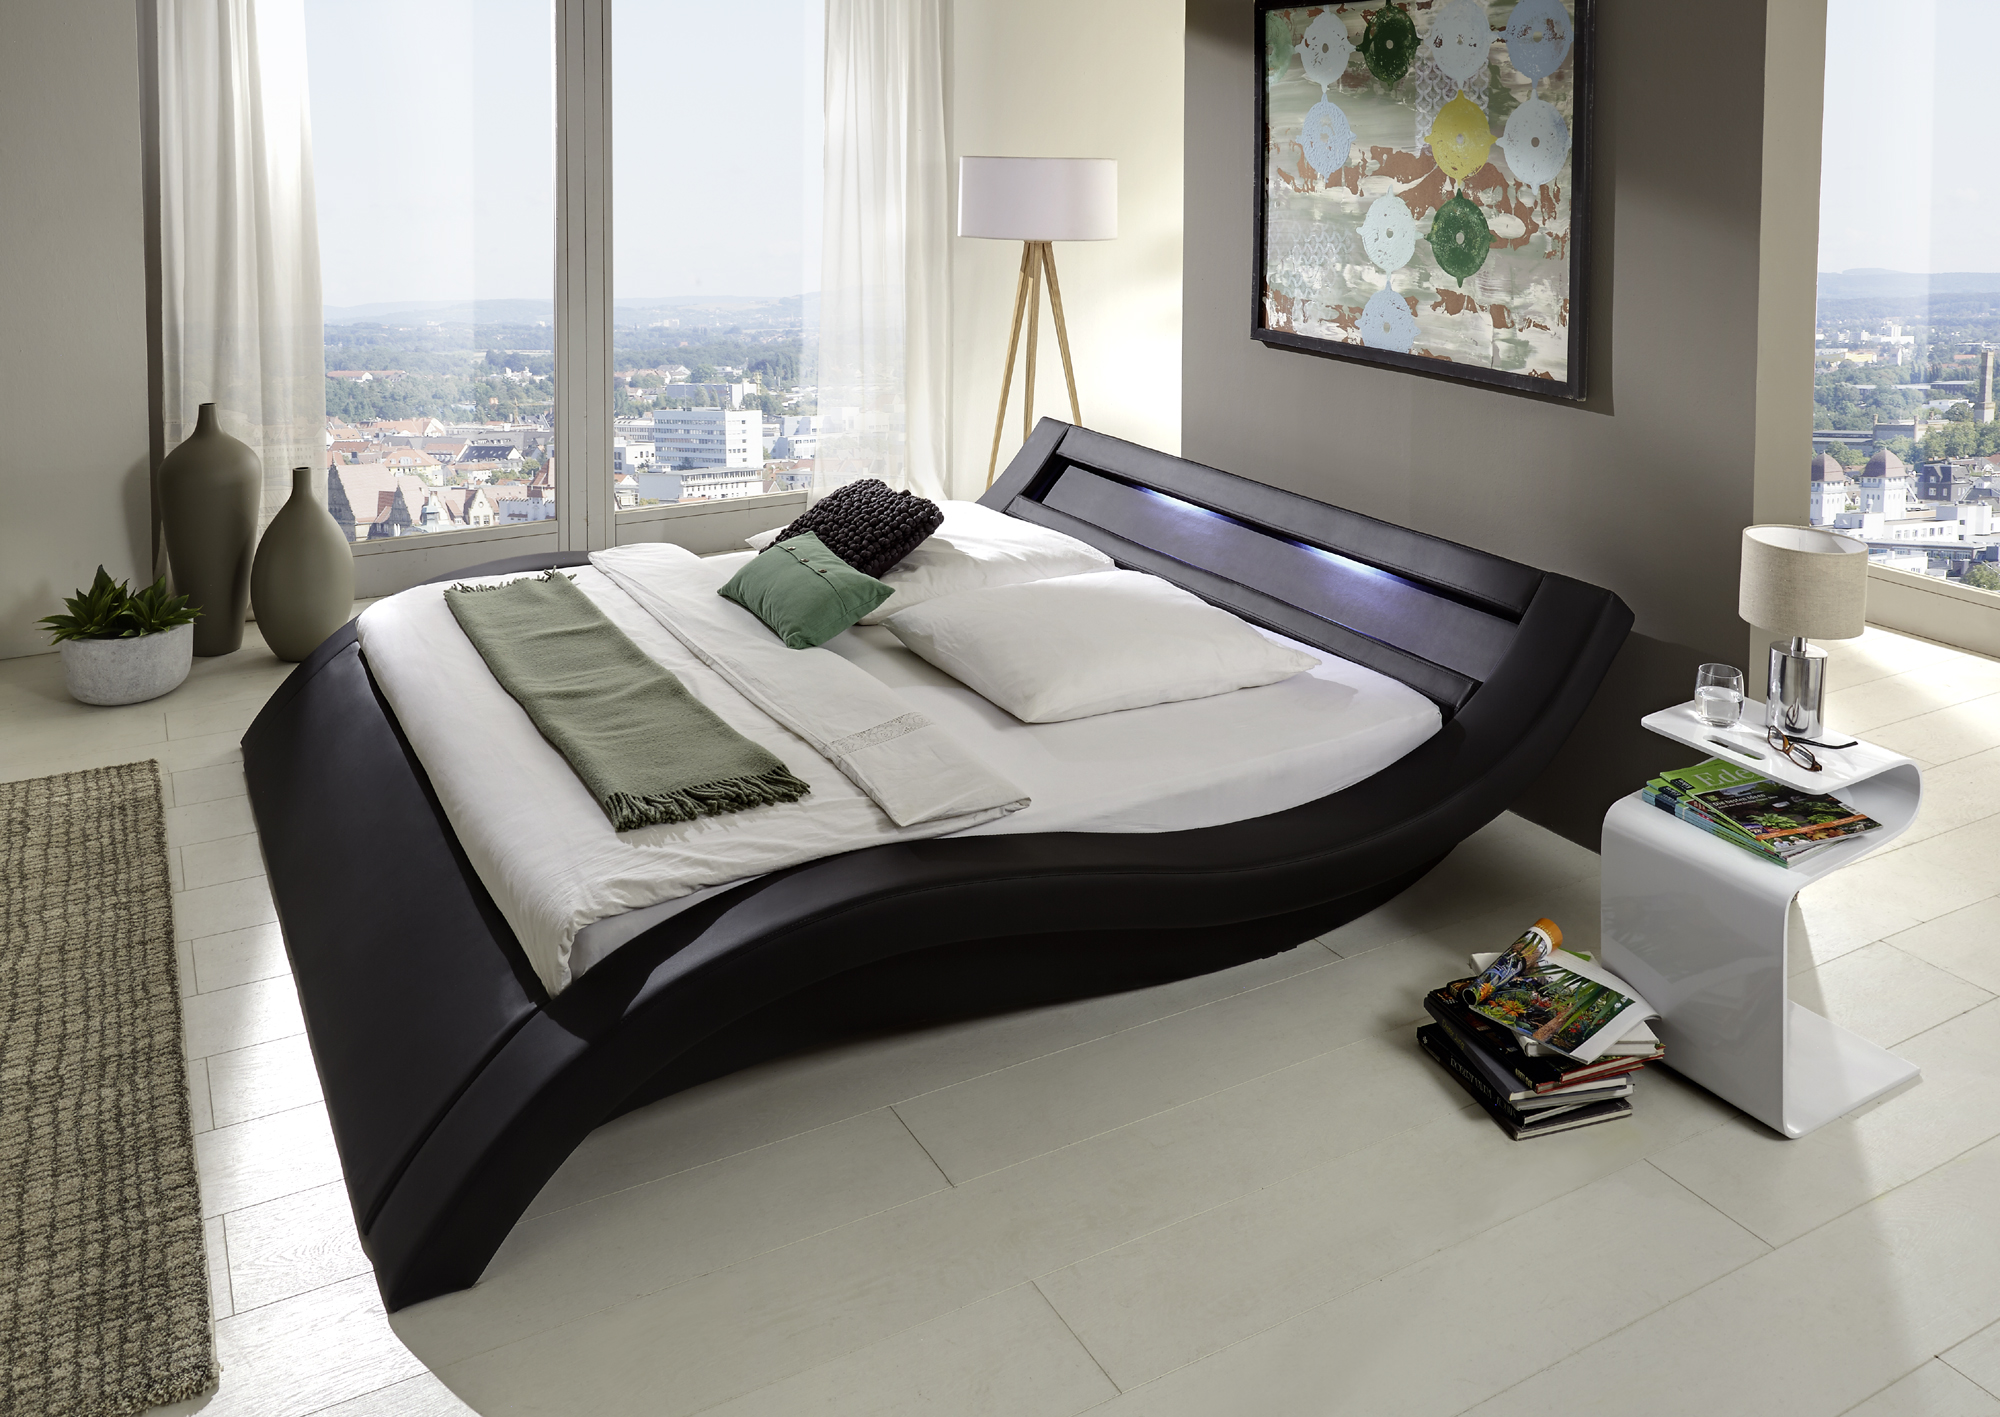 sam polsterbett 140 x 200 cm led schwarz look auf lager. Black Bedroom Furniture Sets. Home Design Ideas